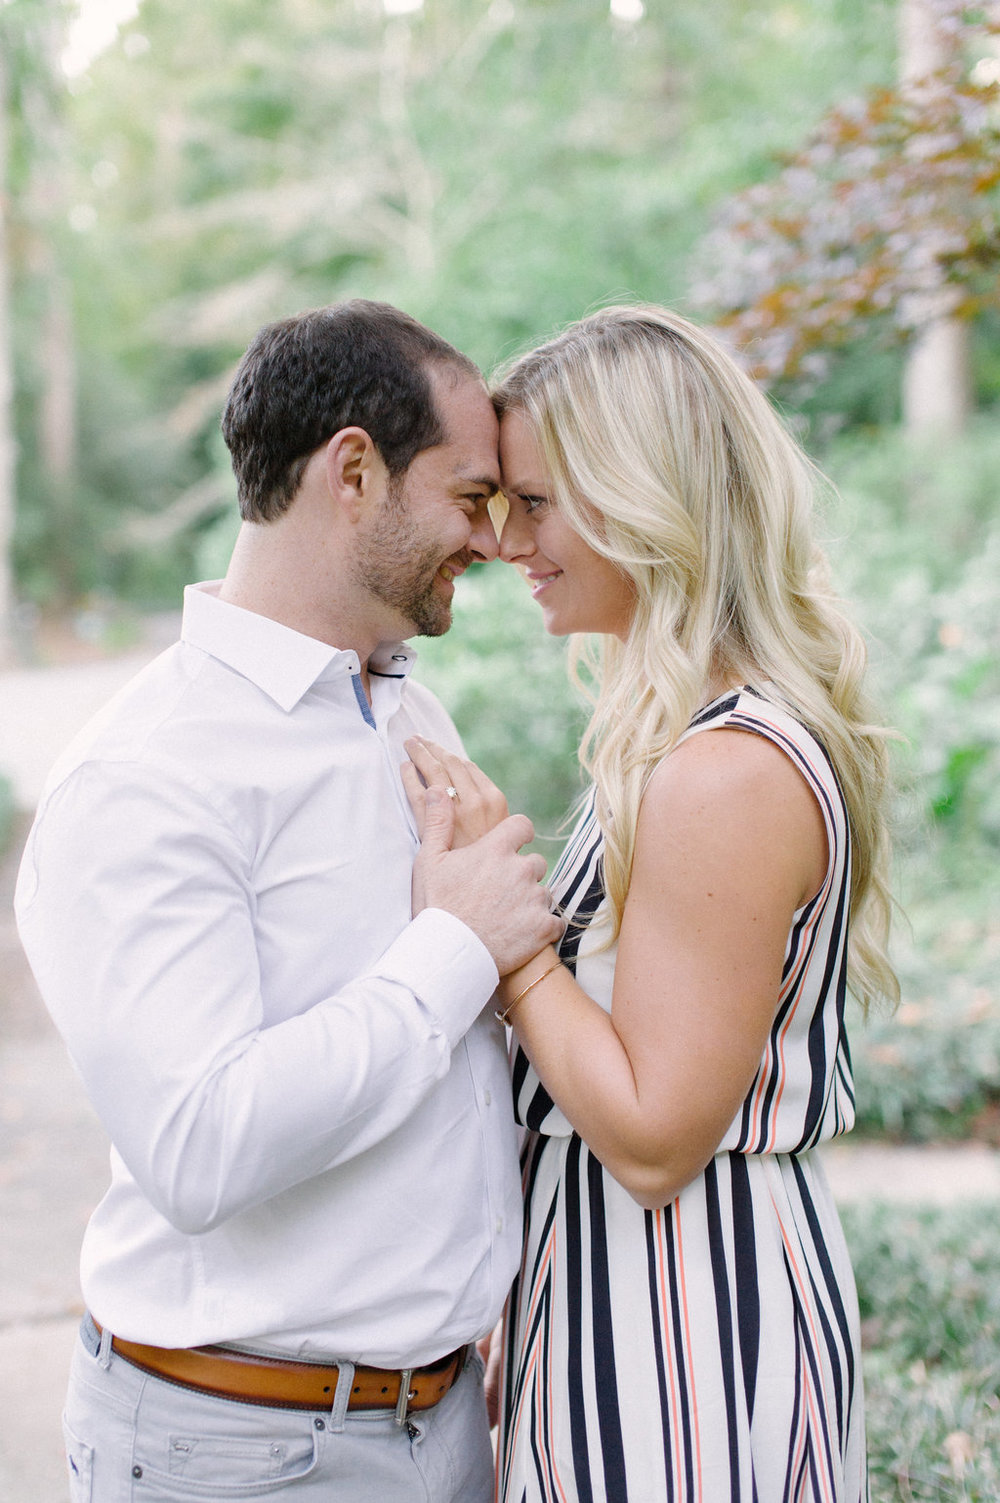 Cator-Woolford-Gardens-Engagement-atlanta-wedding-photographer-hannah-forsberg-20.jpg